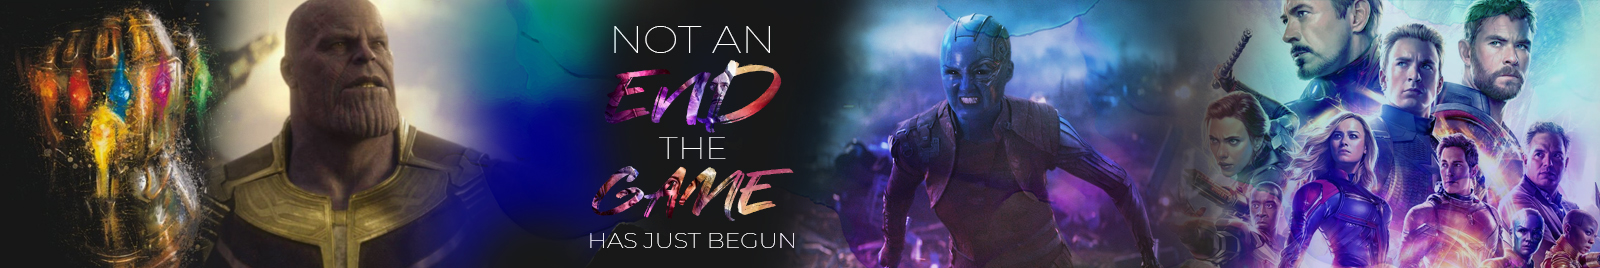 Not an 'end' - The 'Game' has just begun